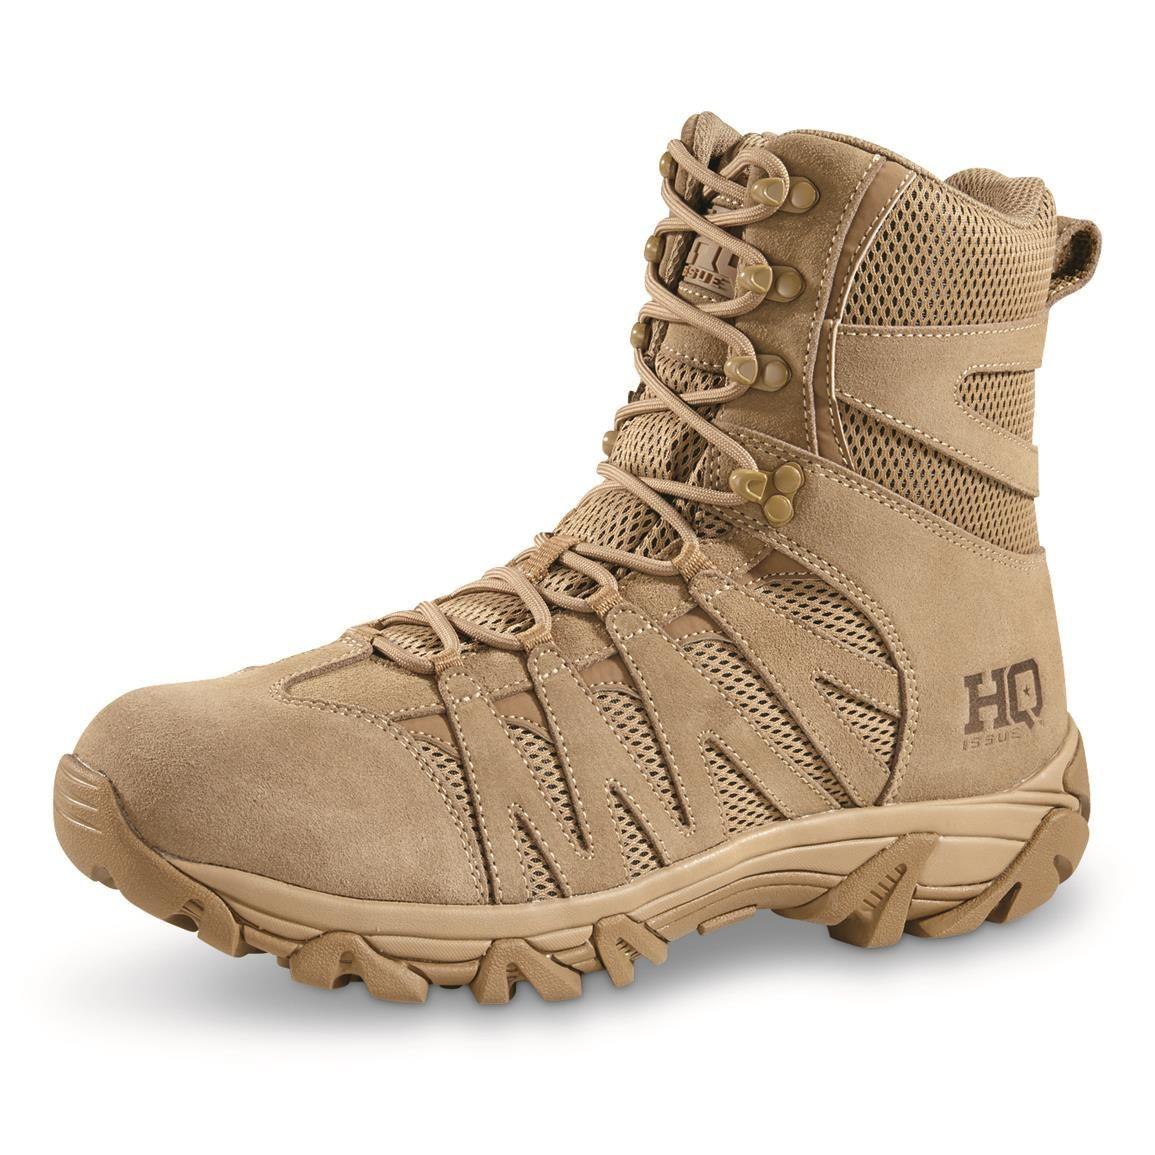 Hq Issue Men S Canyon 8 Waterproof Tactical Hiking Boots Boots Mens Military Boots Combat Boots Men